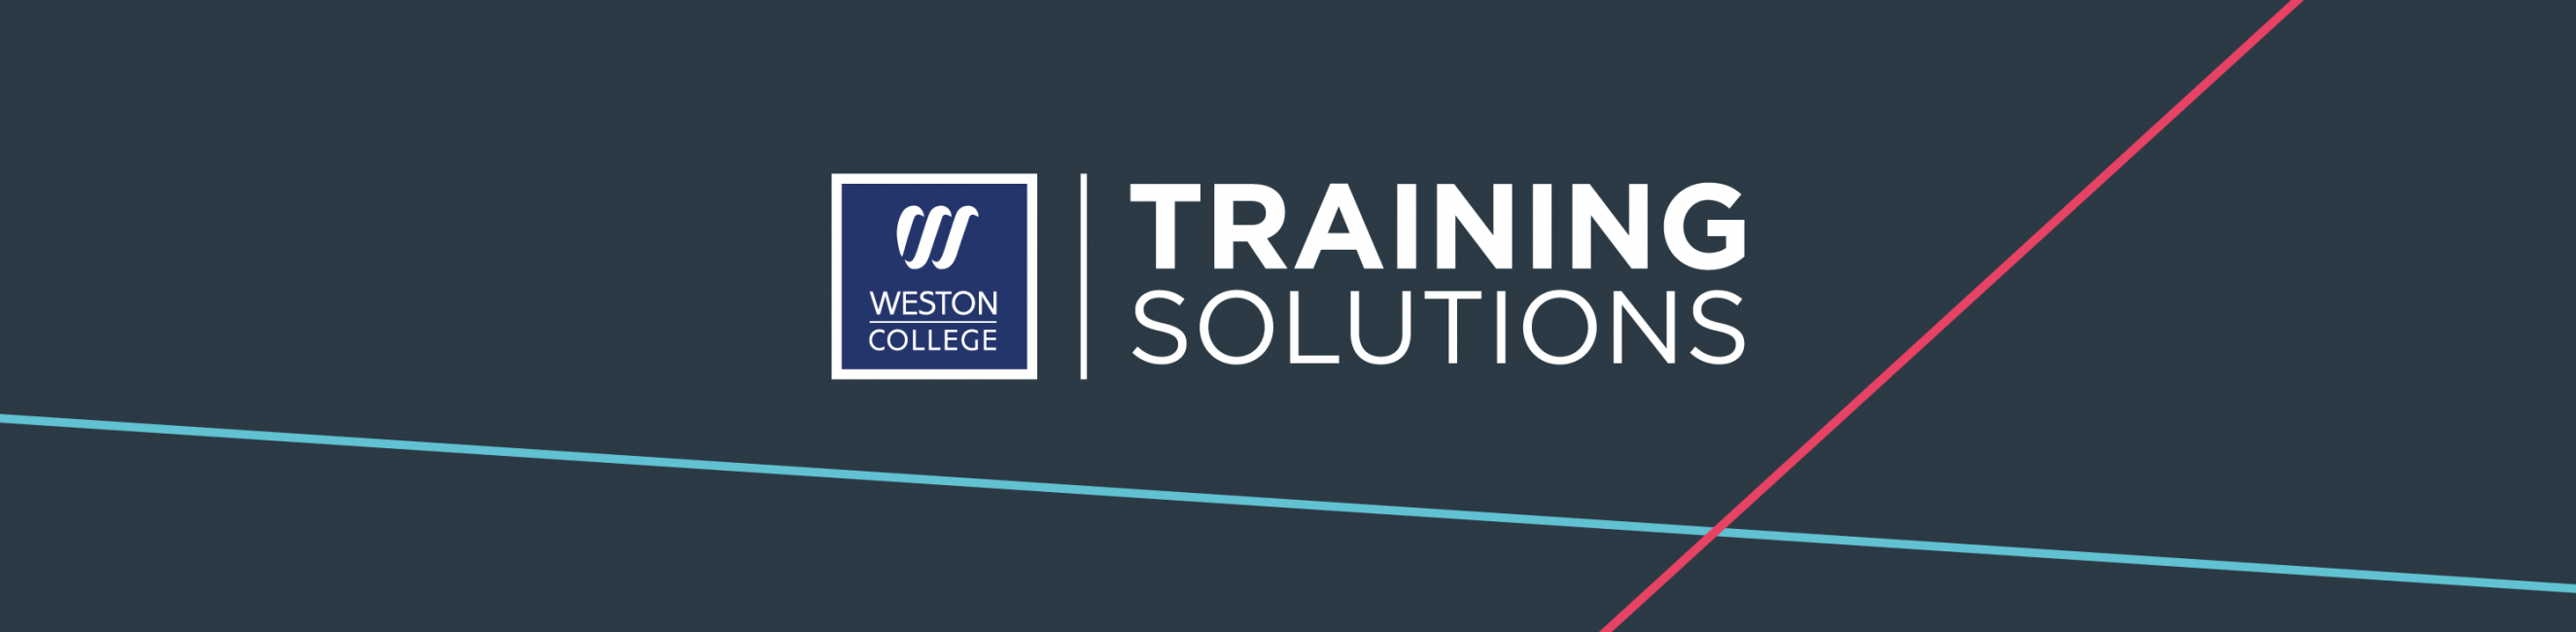 Training Solutions from Weston College